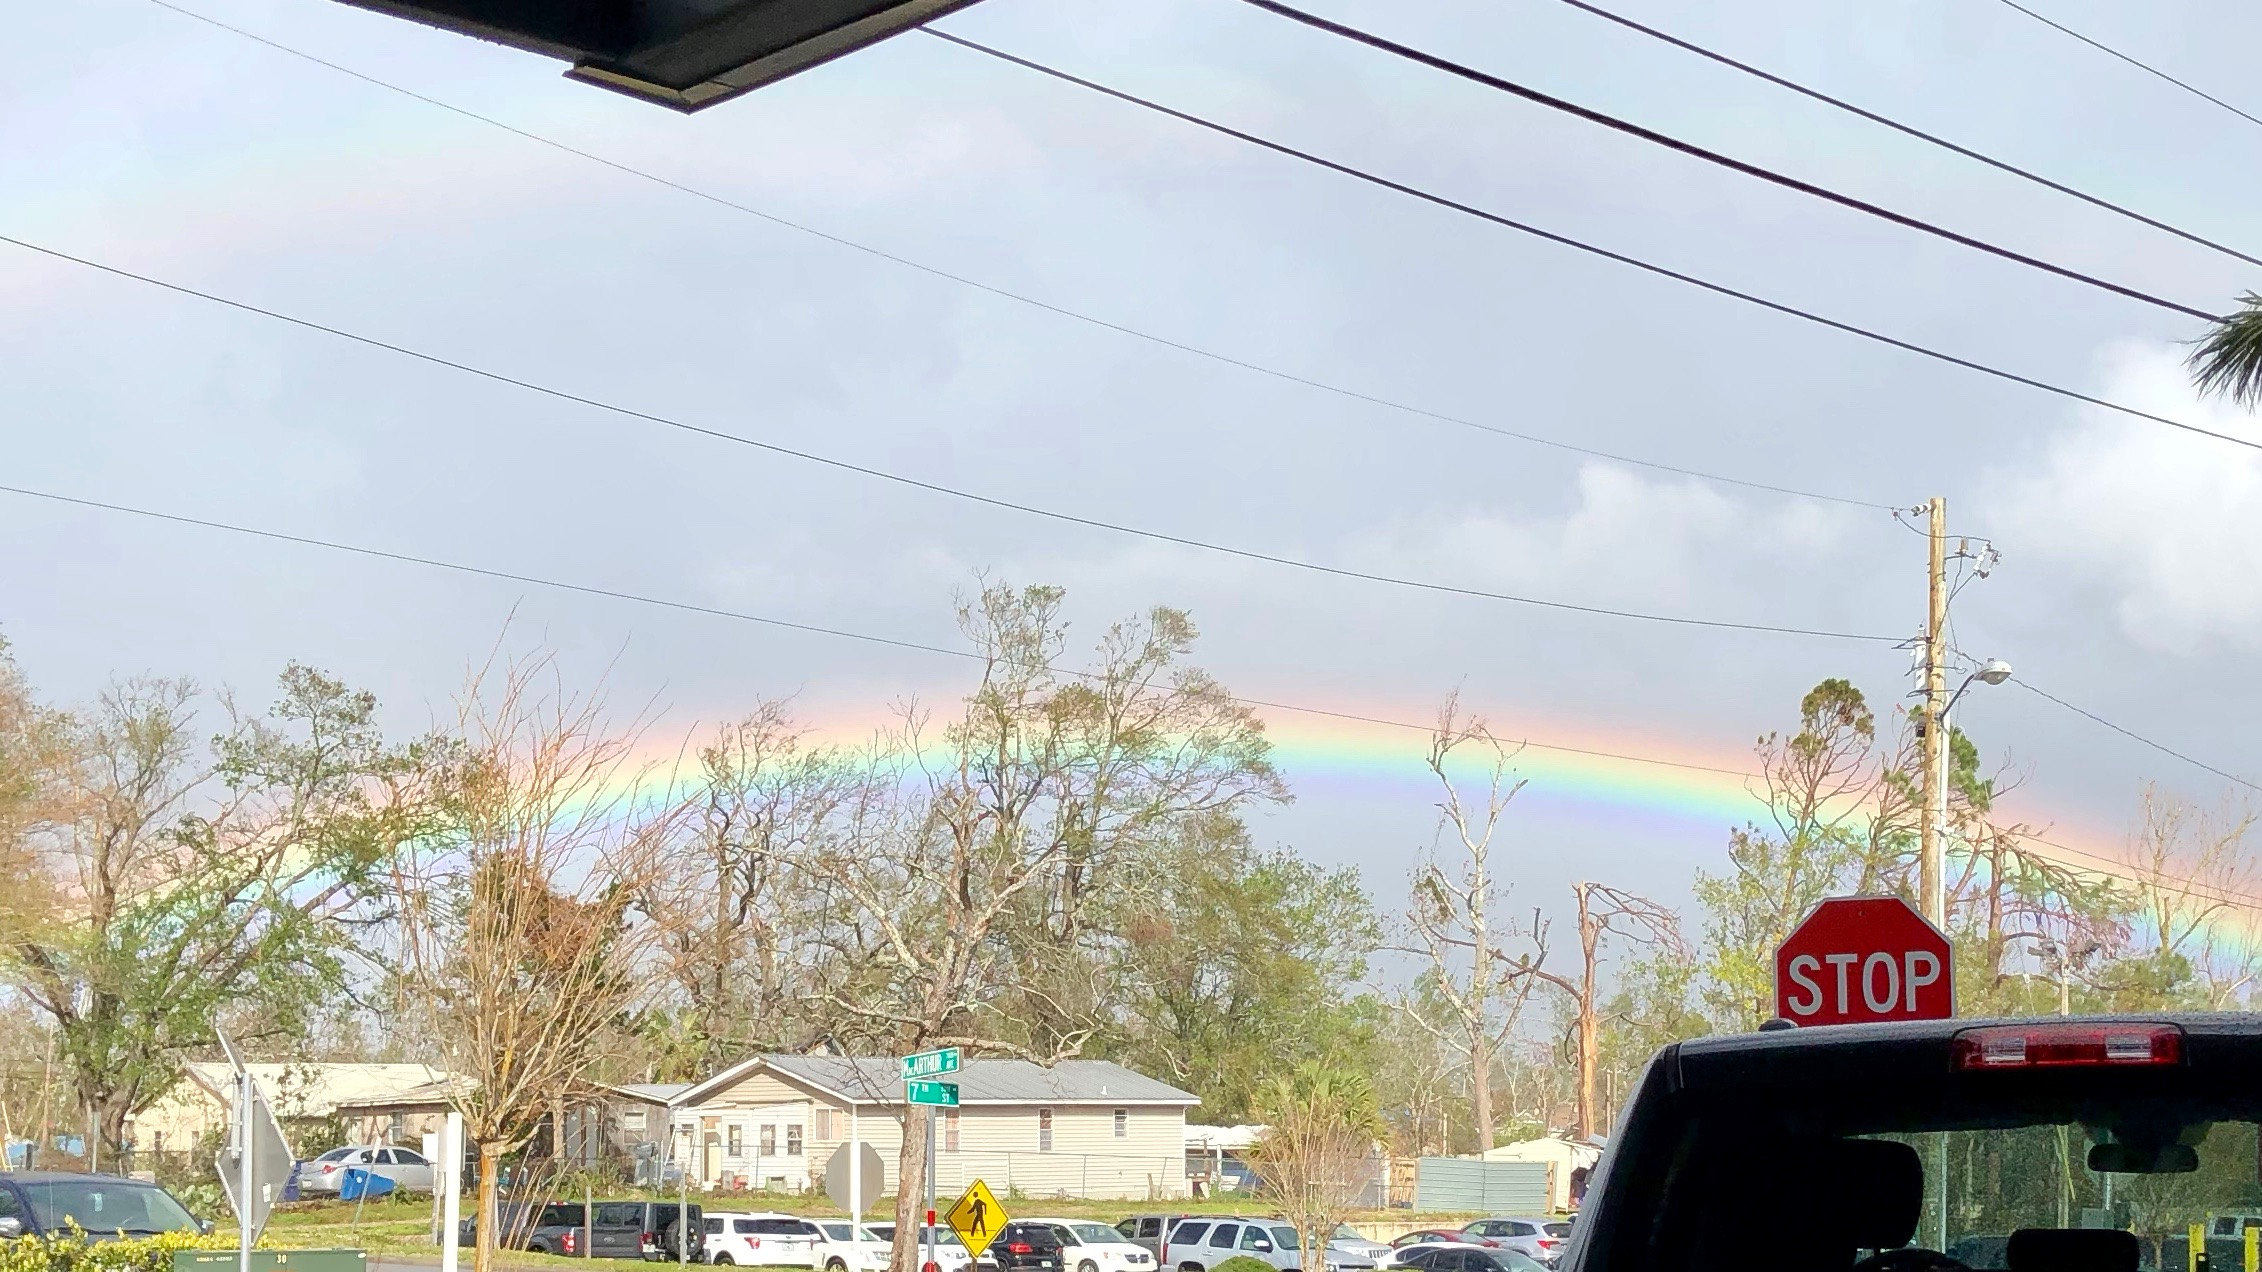 Caught a glimpse of God's reminder.